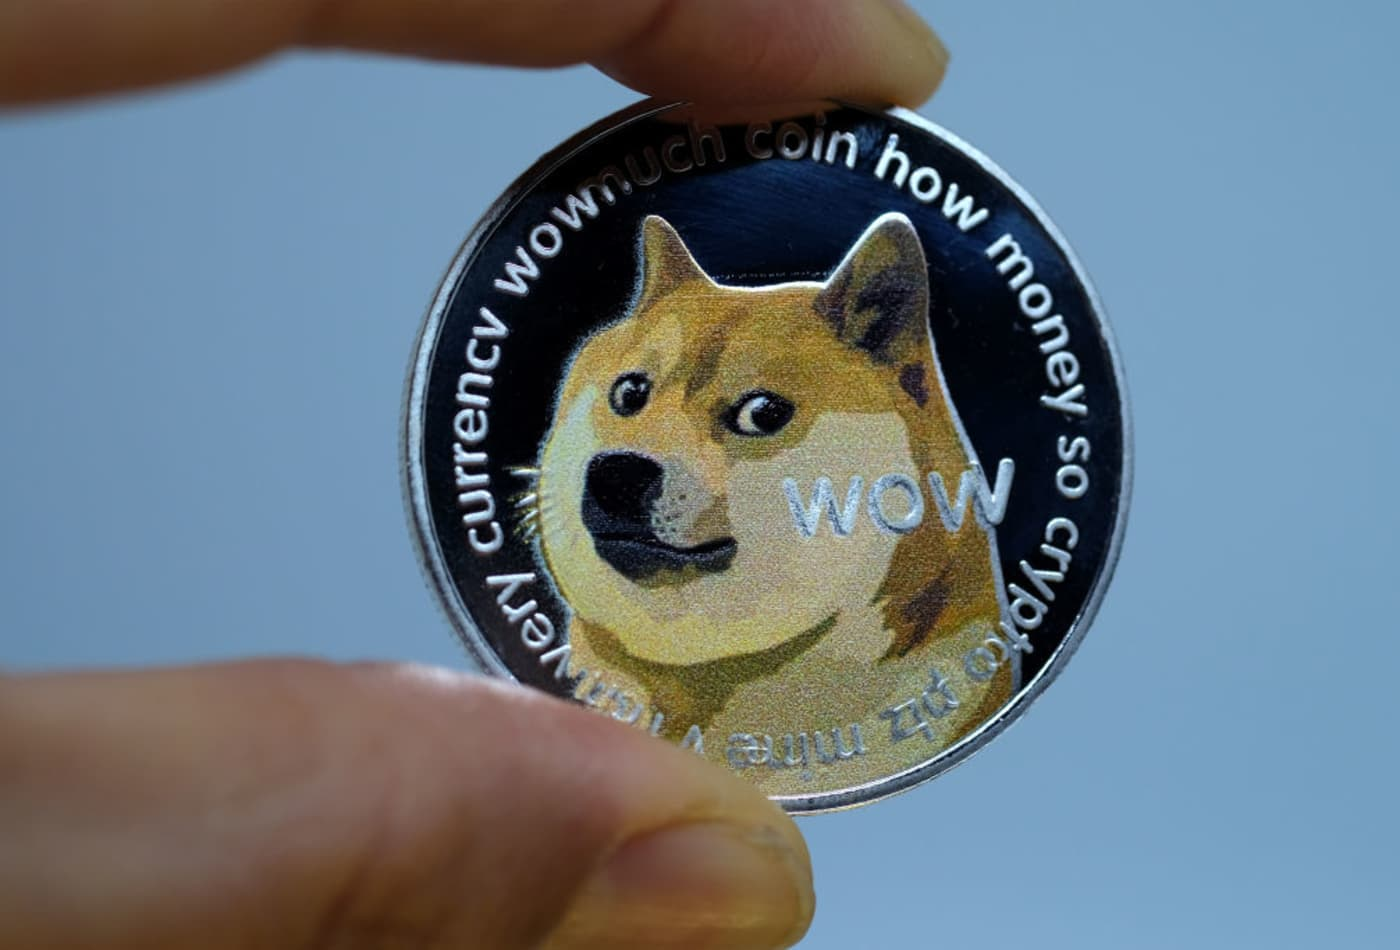 Dogecoin up 12,000% since January — here's how much money you'd have if you invested $1,000 at the beginning of 2021